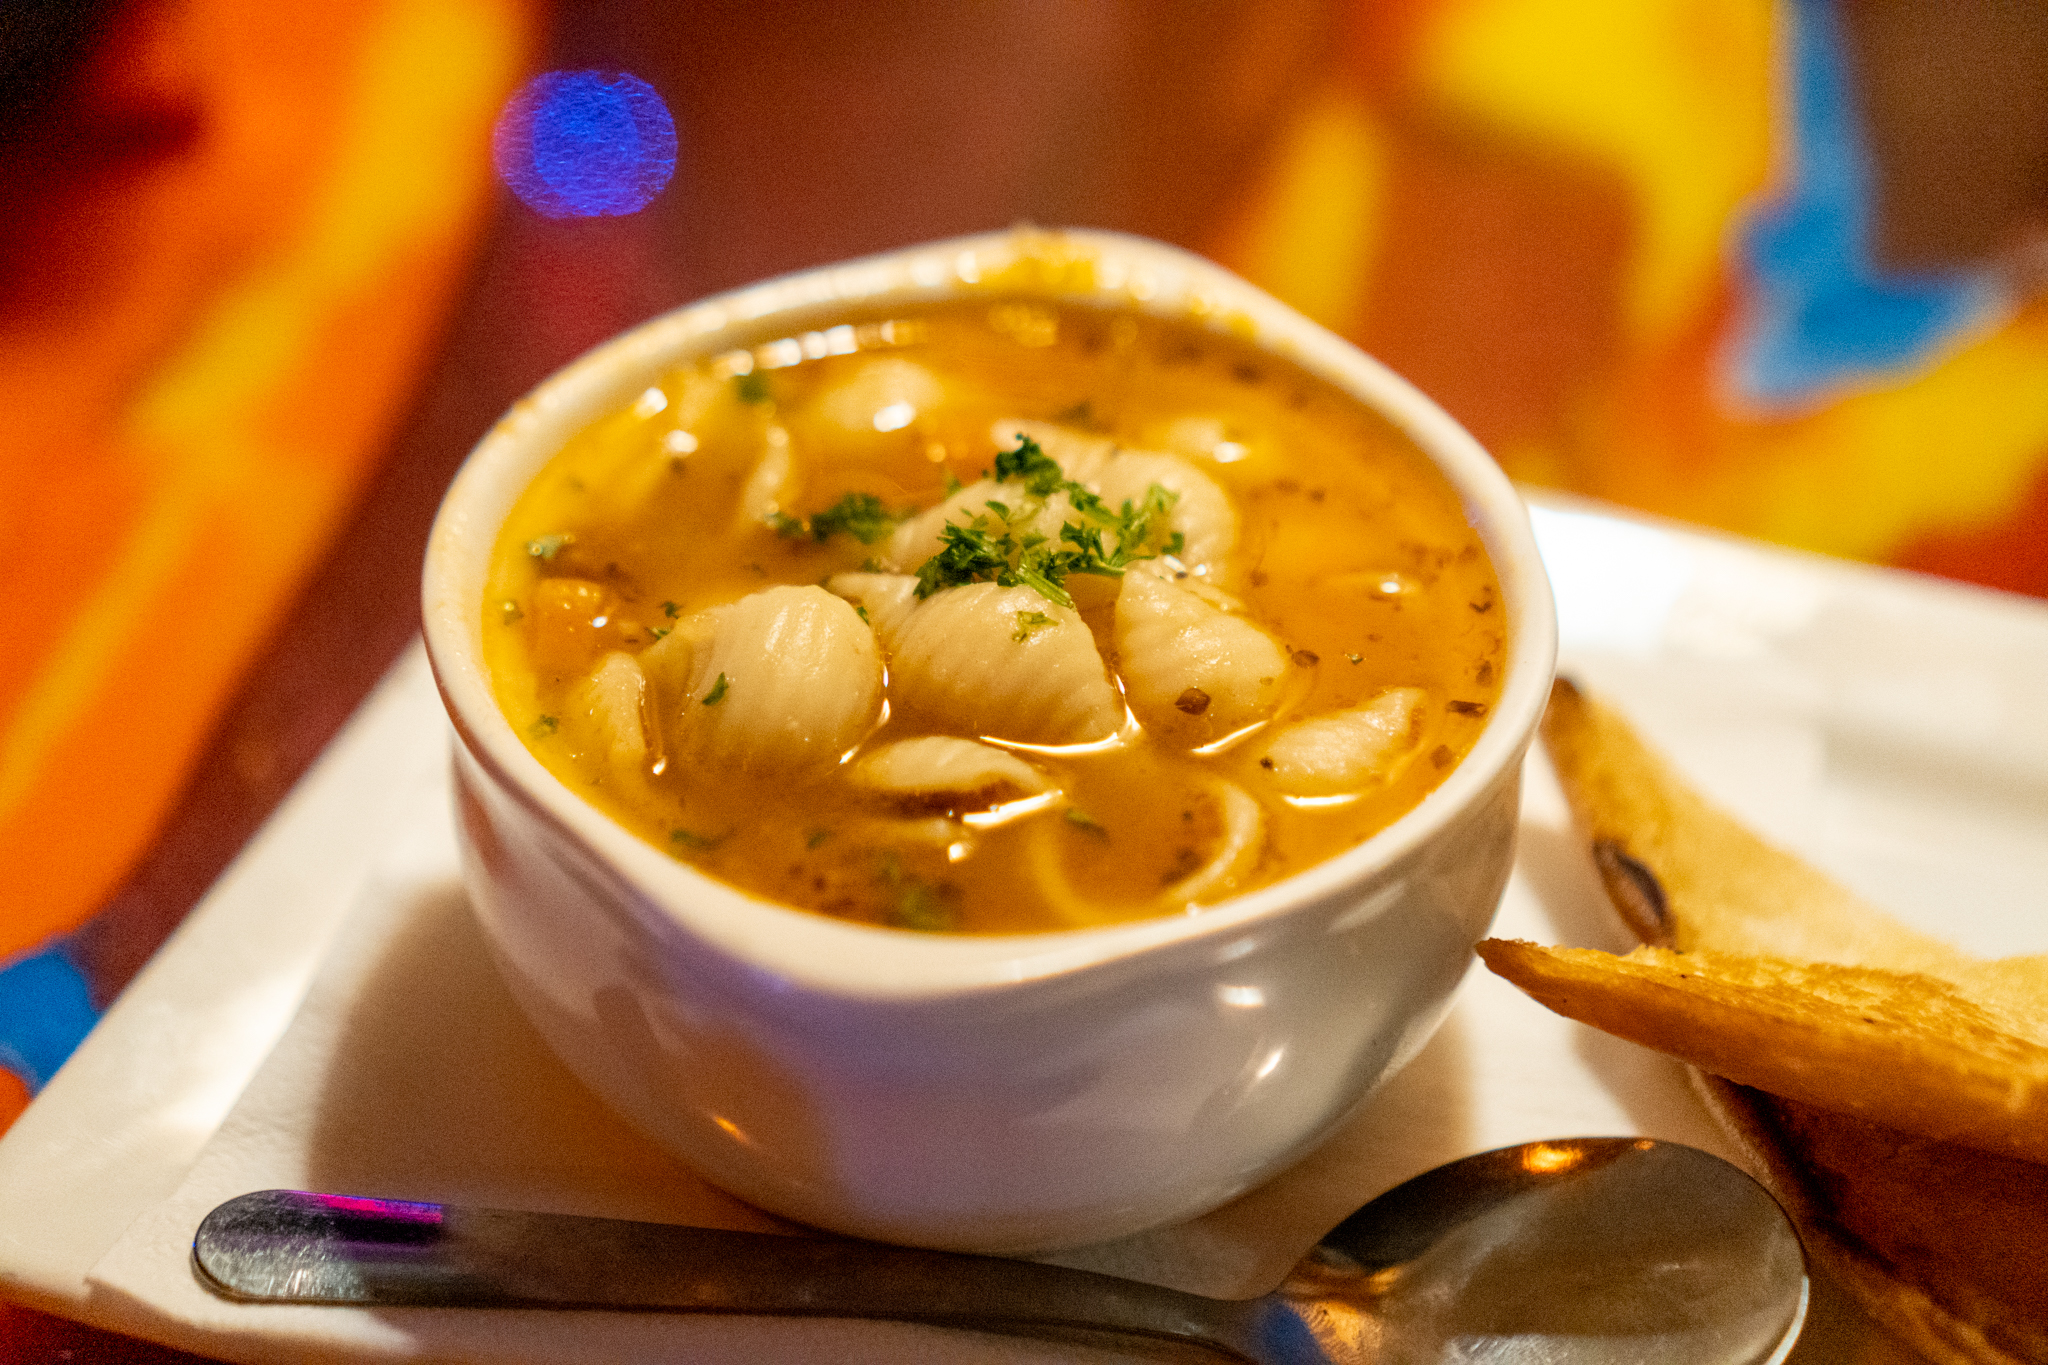 Twisted Tiki Soup of the Day Minestrone